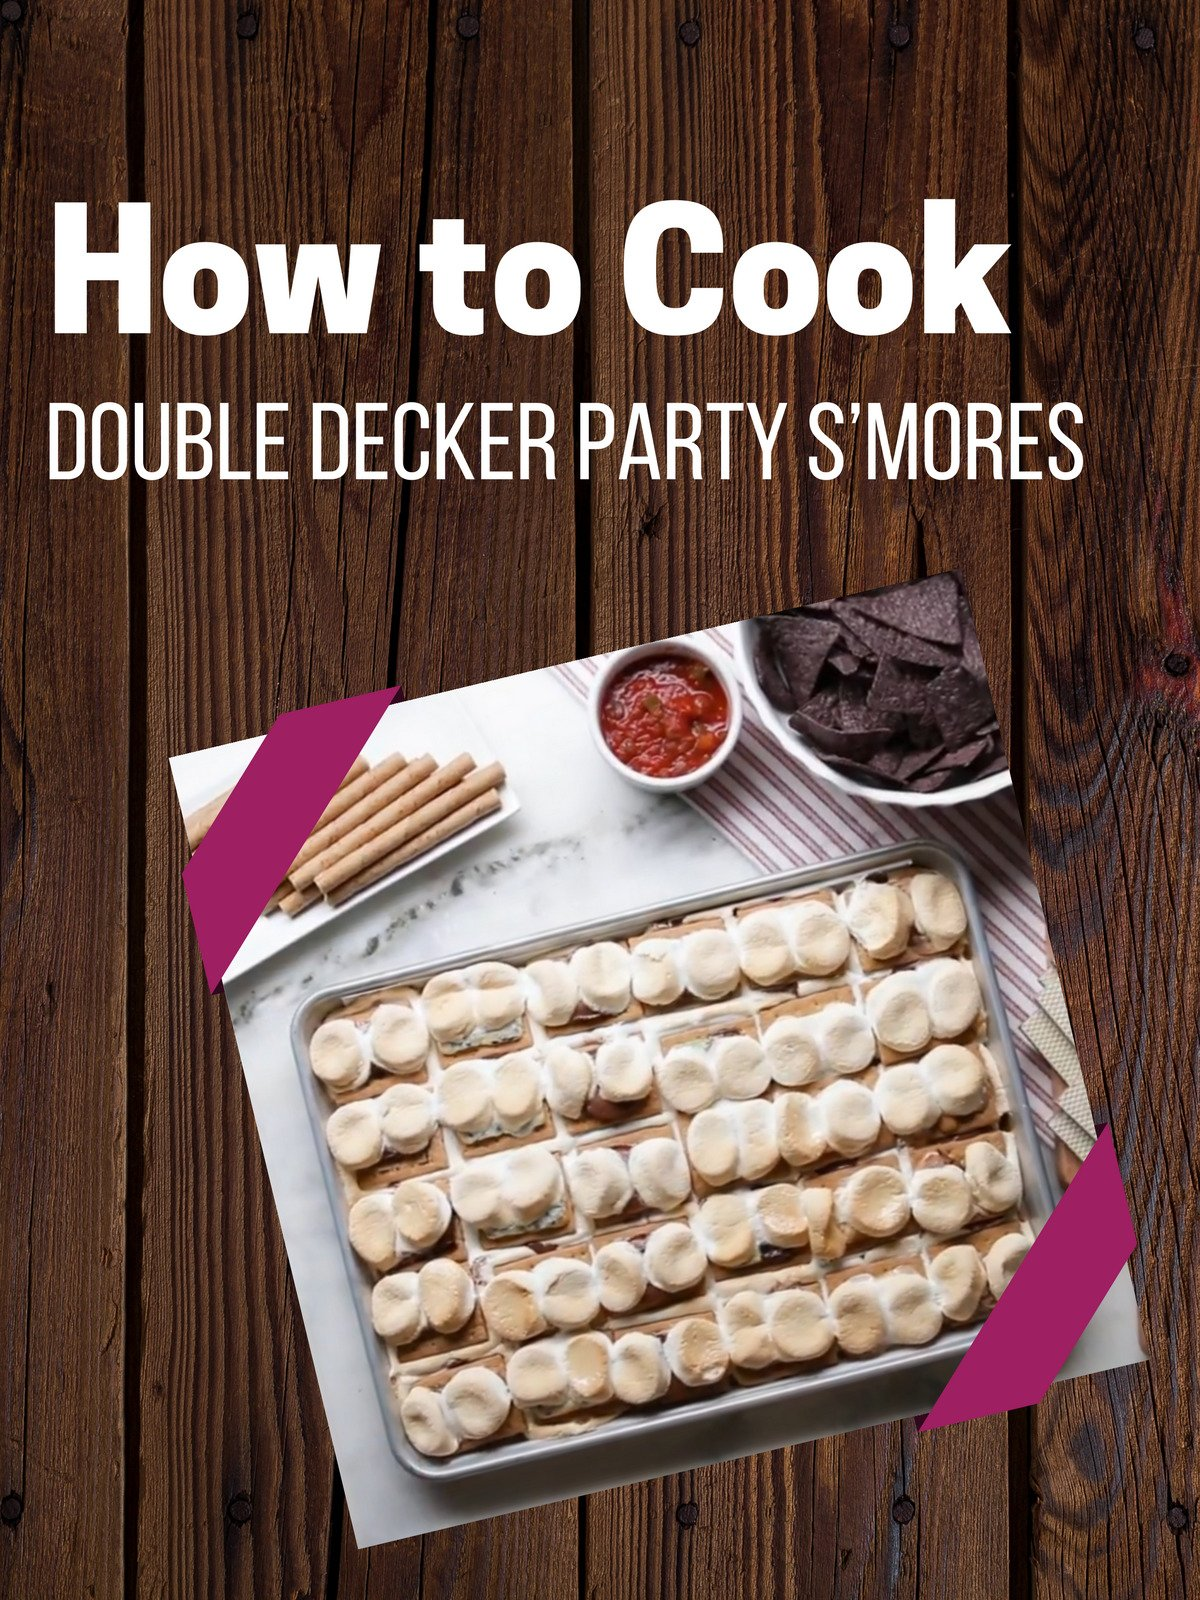 Clip: How to Cook Double Decker Party S'mores